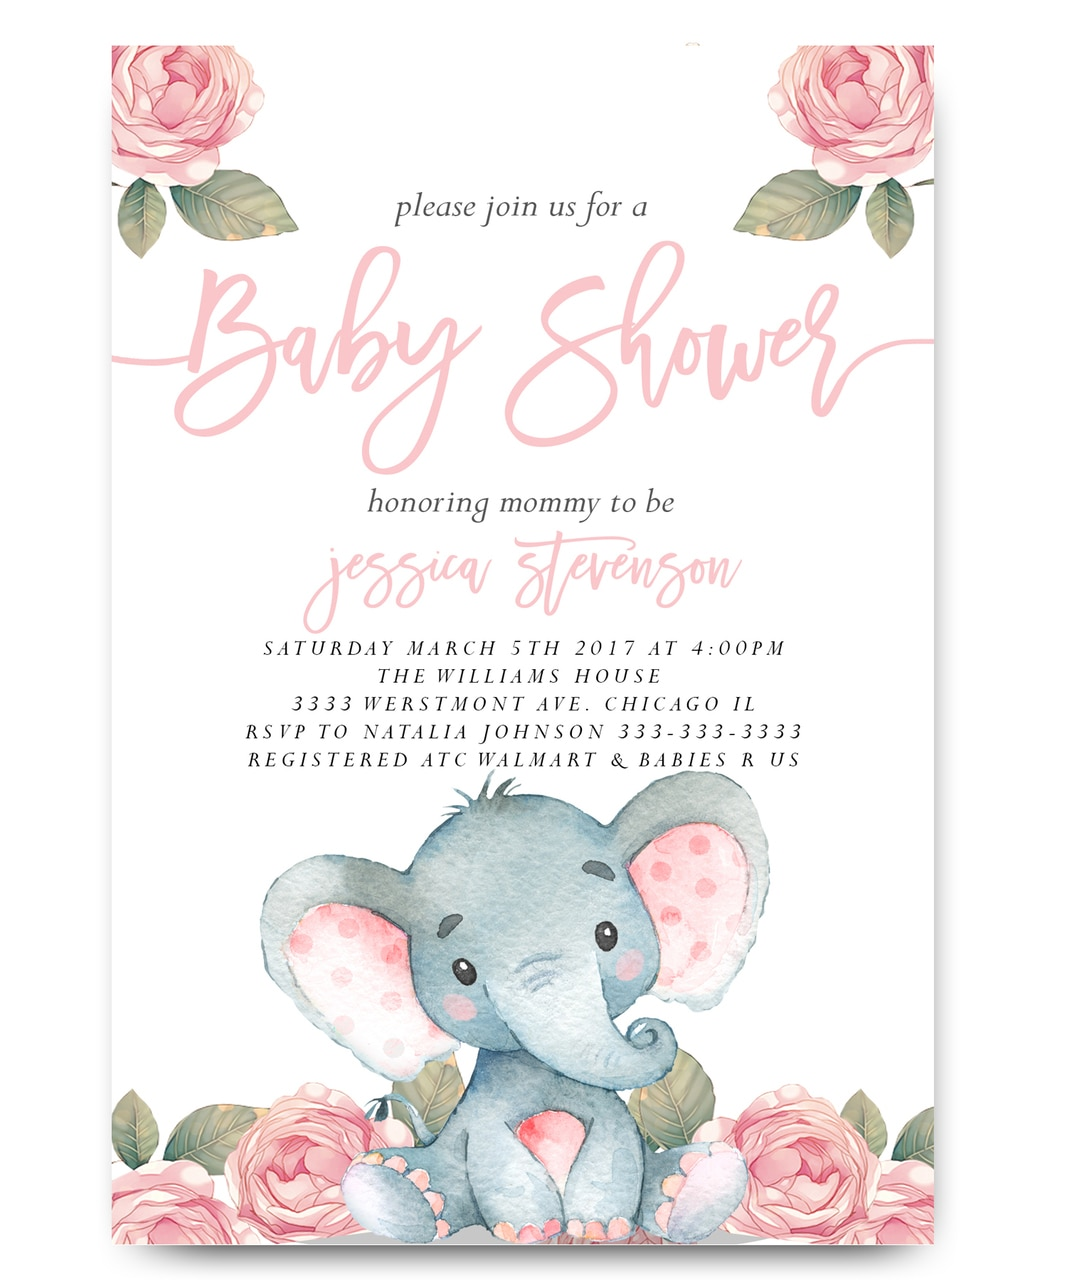 Full Size of Baby Shower:63+ Delightful Cheap Baby Shower Invitations Image Inspirations Cheap Baby Shower Invitations Elephant Baby Shower Invitationelephant With Flowers Elephant Pink Elephant Elephant